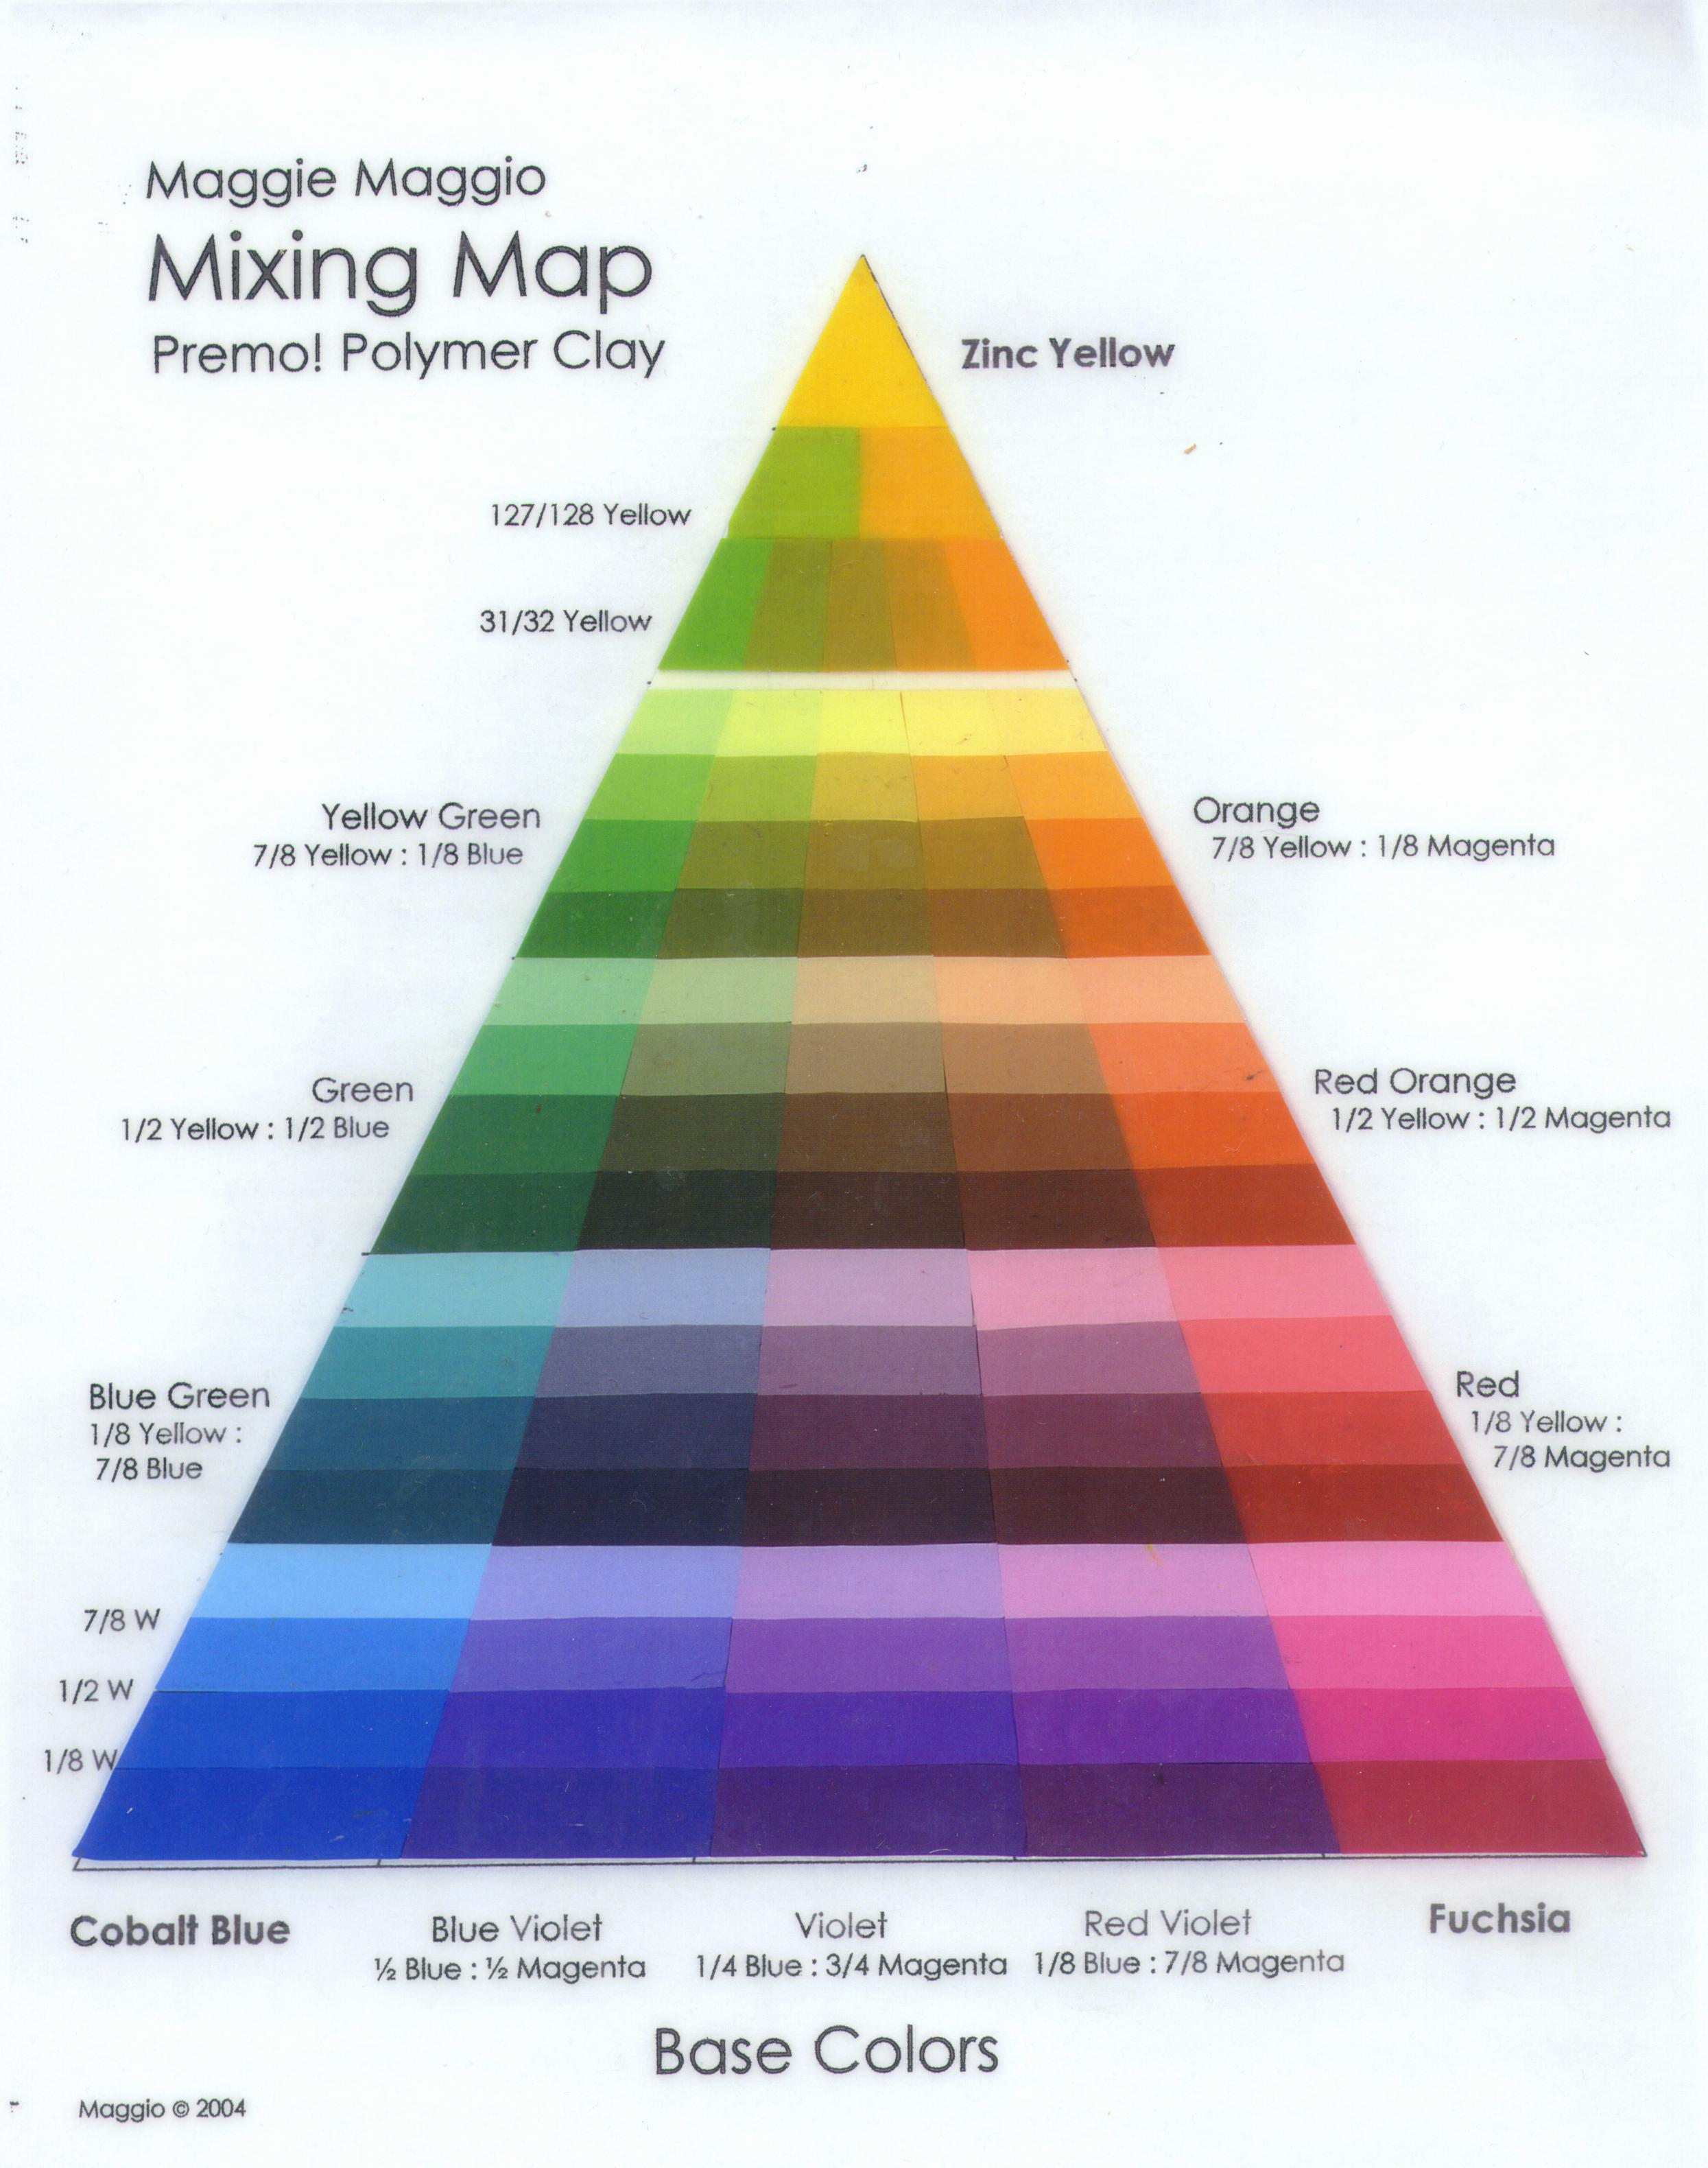 Mixing map 101 navigating the world of color via artistica mixing map 101 navigating the world of color gumiabroncs Image collections